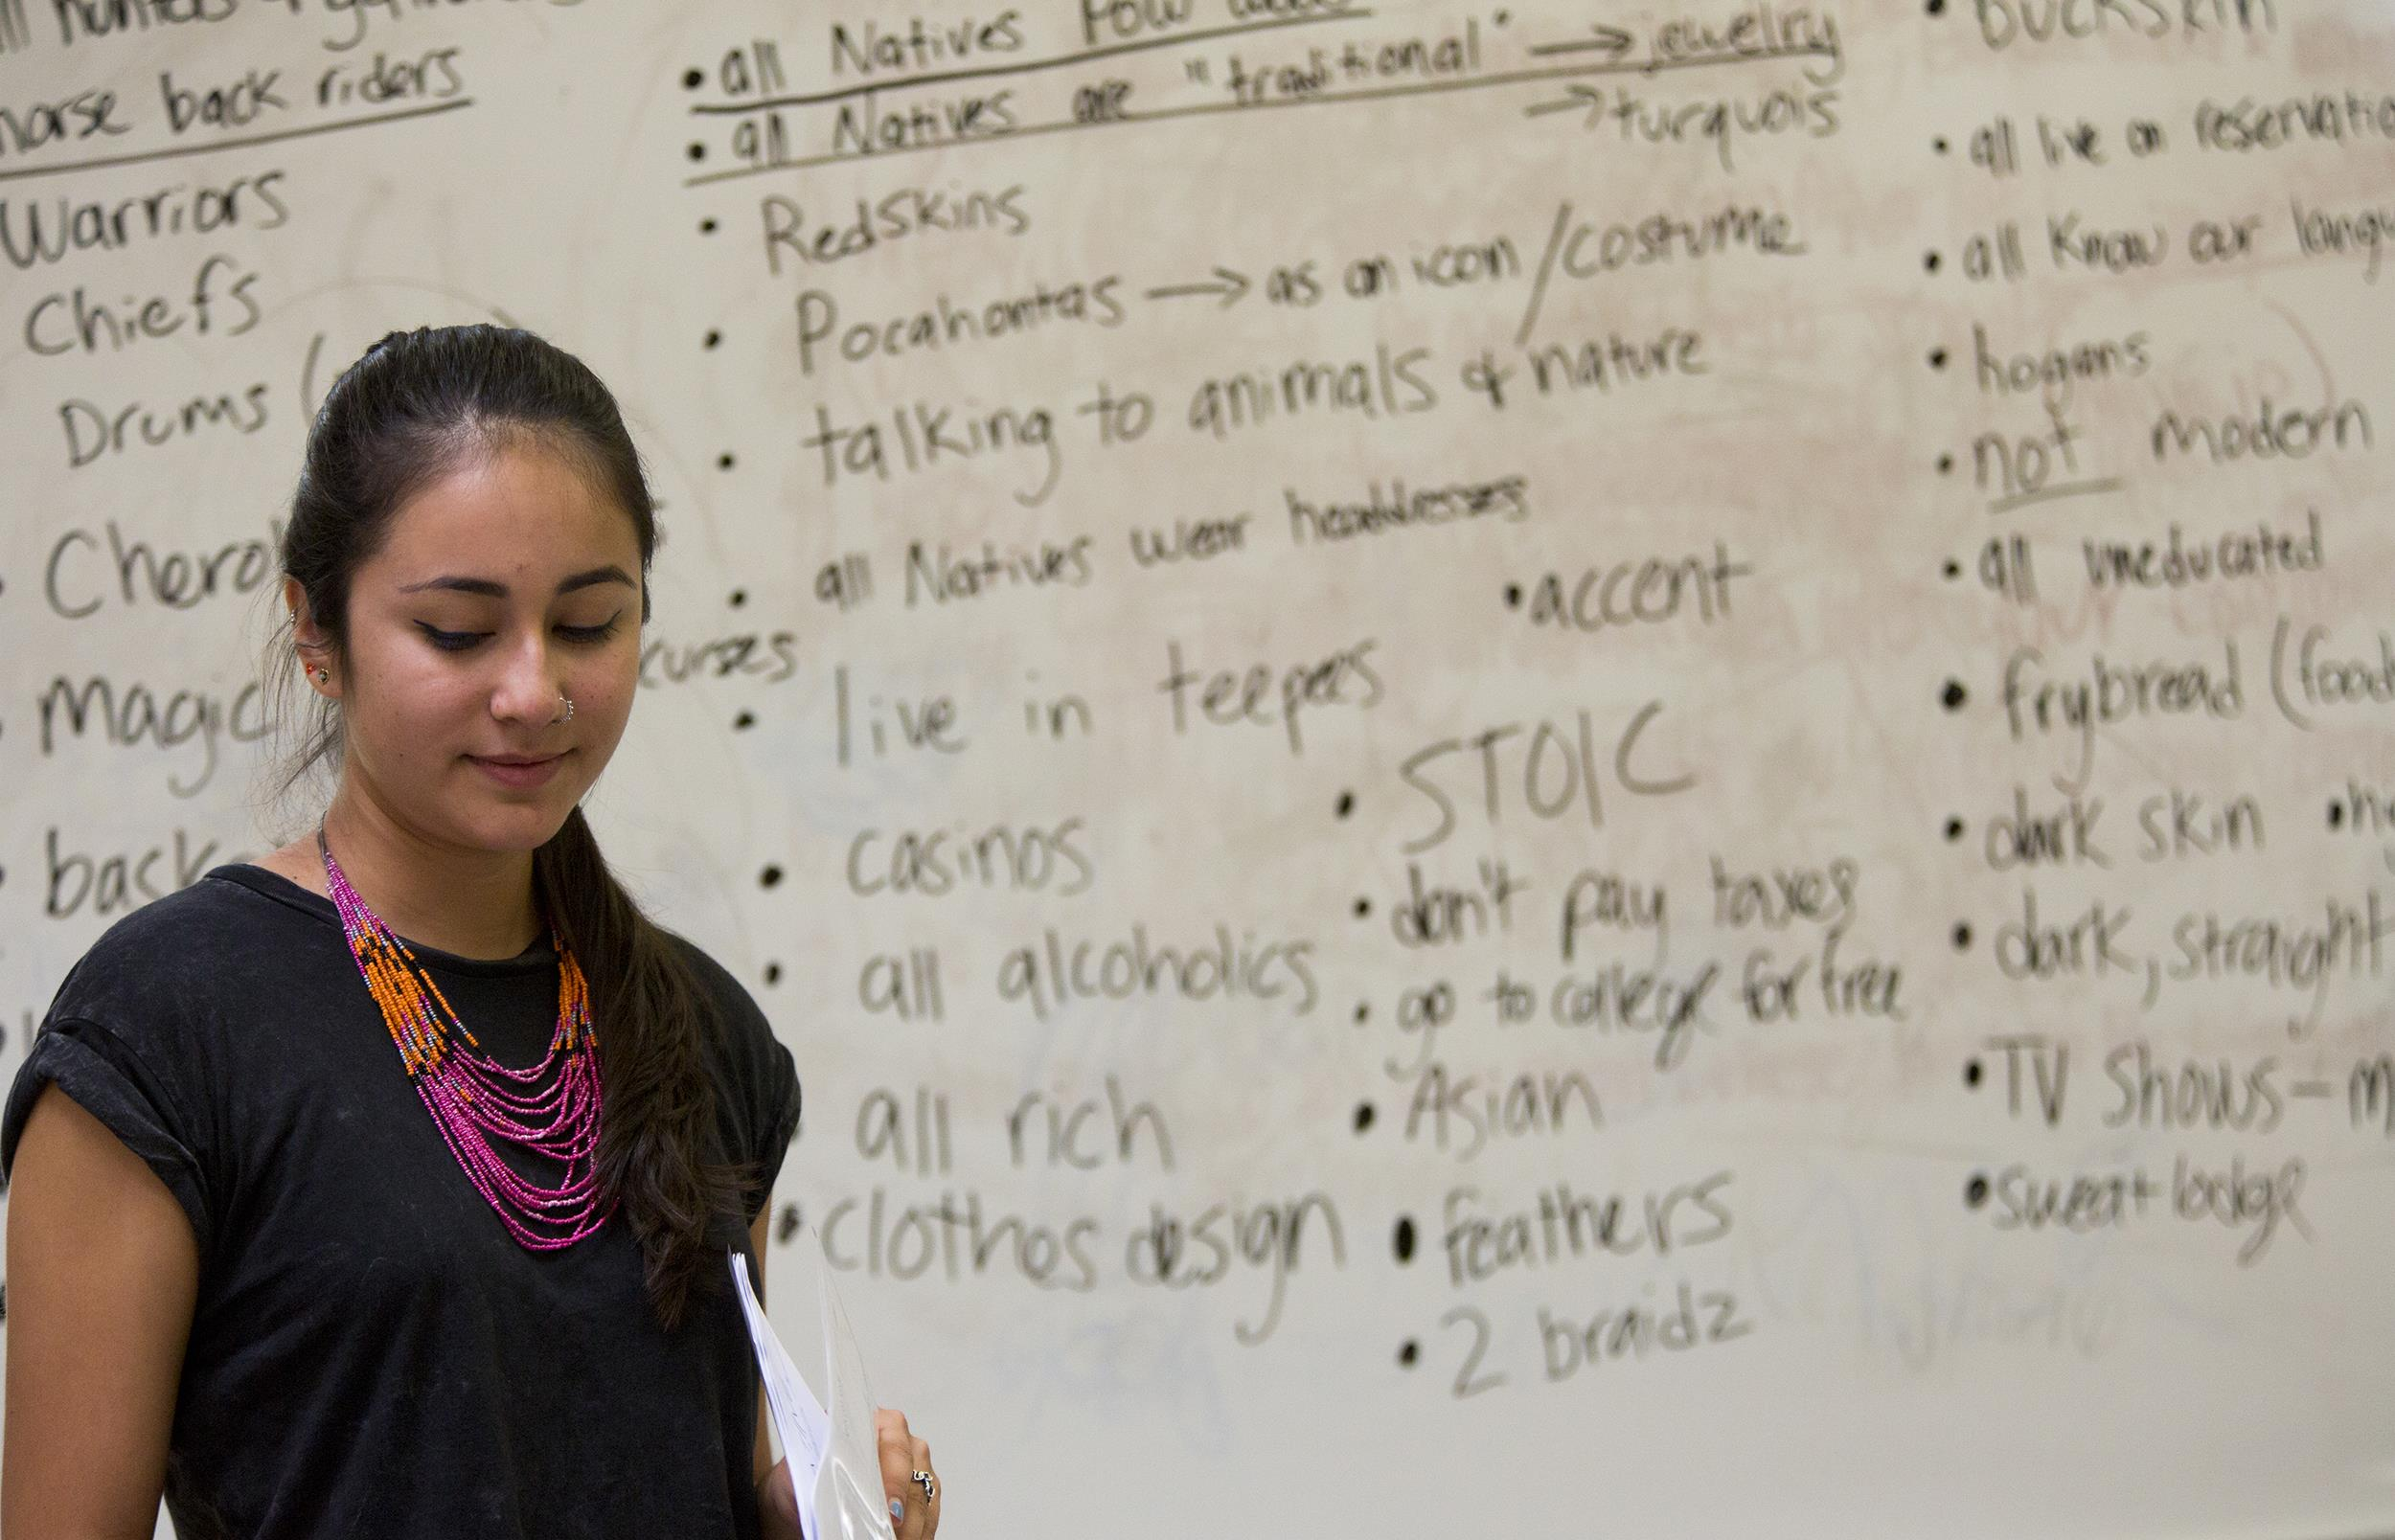 Image: Braudie Blais-Billie, 21, a Columbia University student and a member of the Seminole tribe in Florida, leads a discussion with a group of high school and younger students on the Tohajiilee reservation about Native stereotypes.